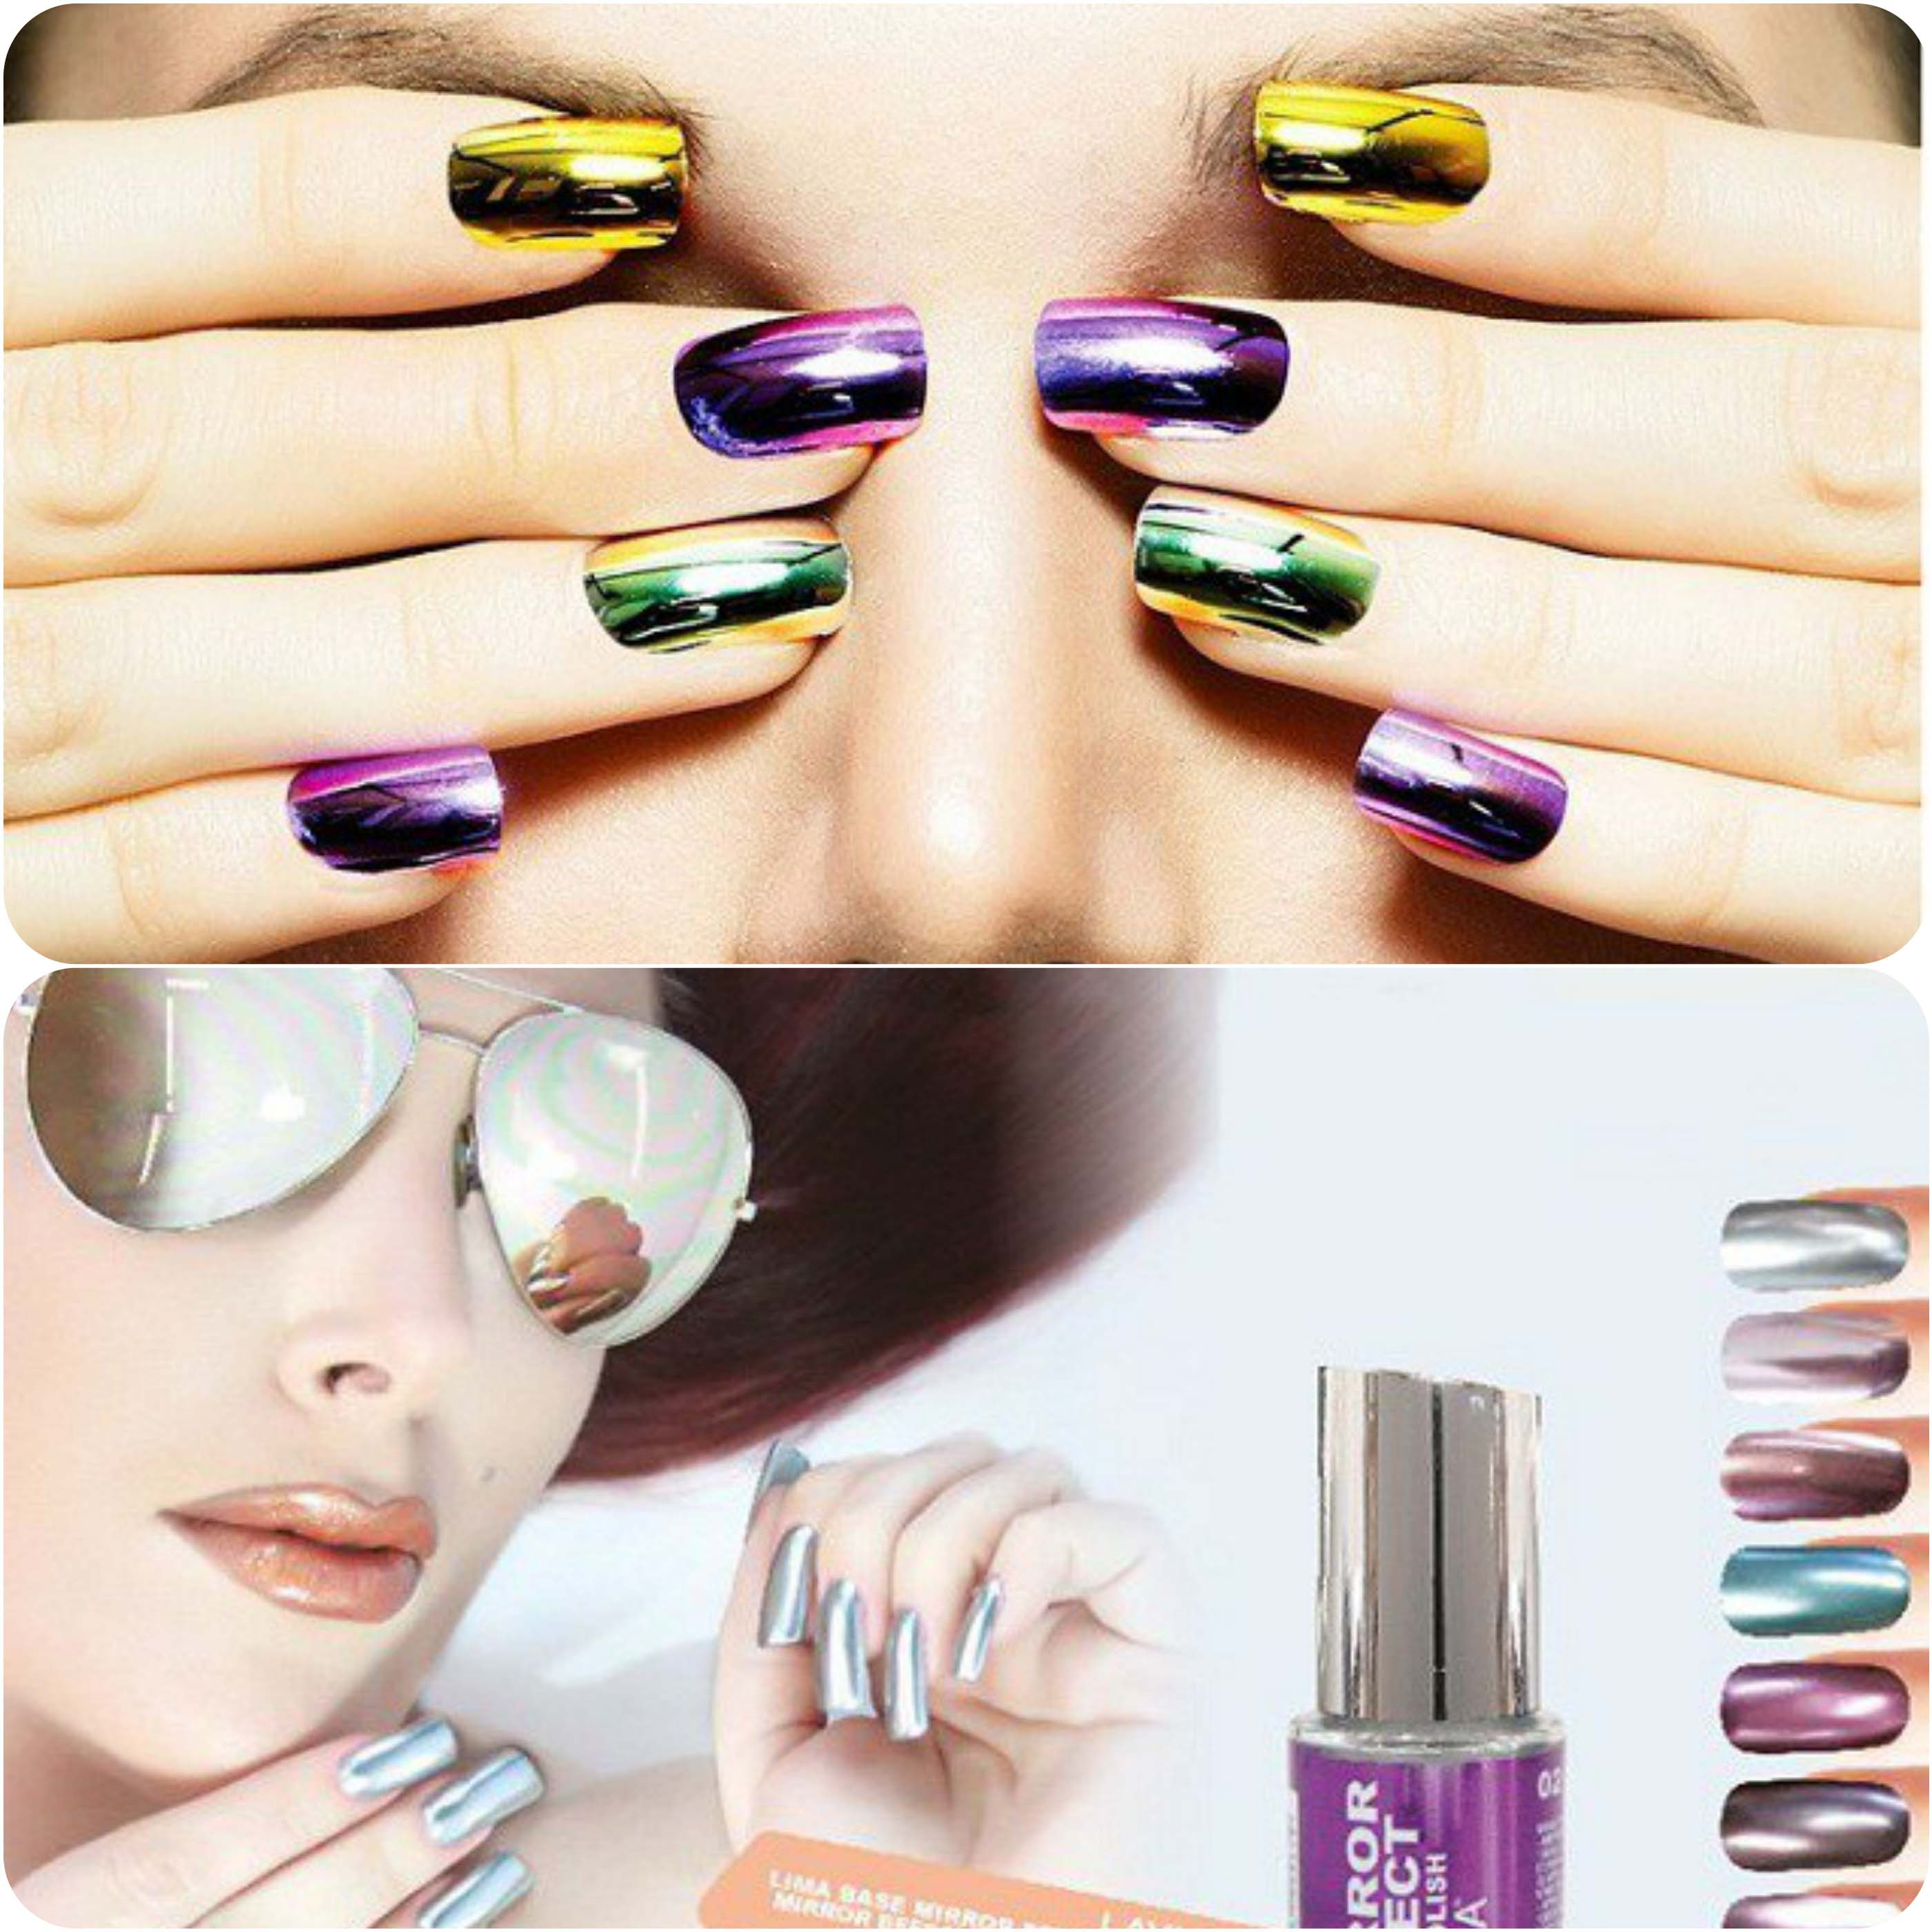 Best Dazzling Reflecting Nail Art Designs For Girls....styloplanet (14)